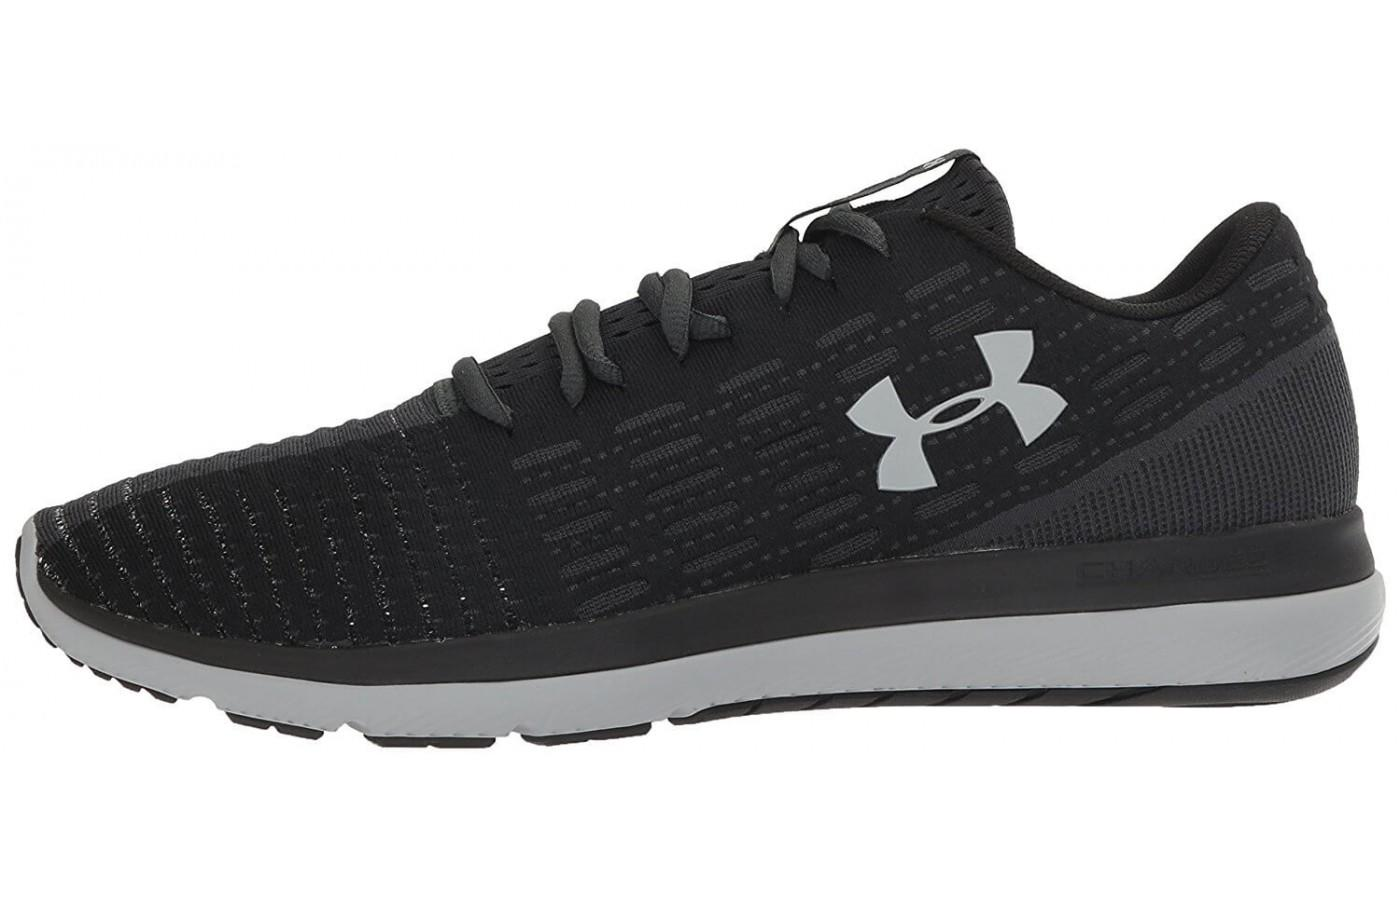 The Under Armour Threadborne Slingflex uses a two-layer cushioning system for support and comfort